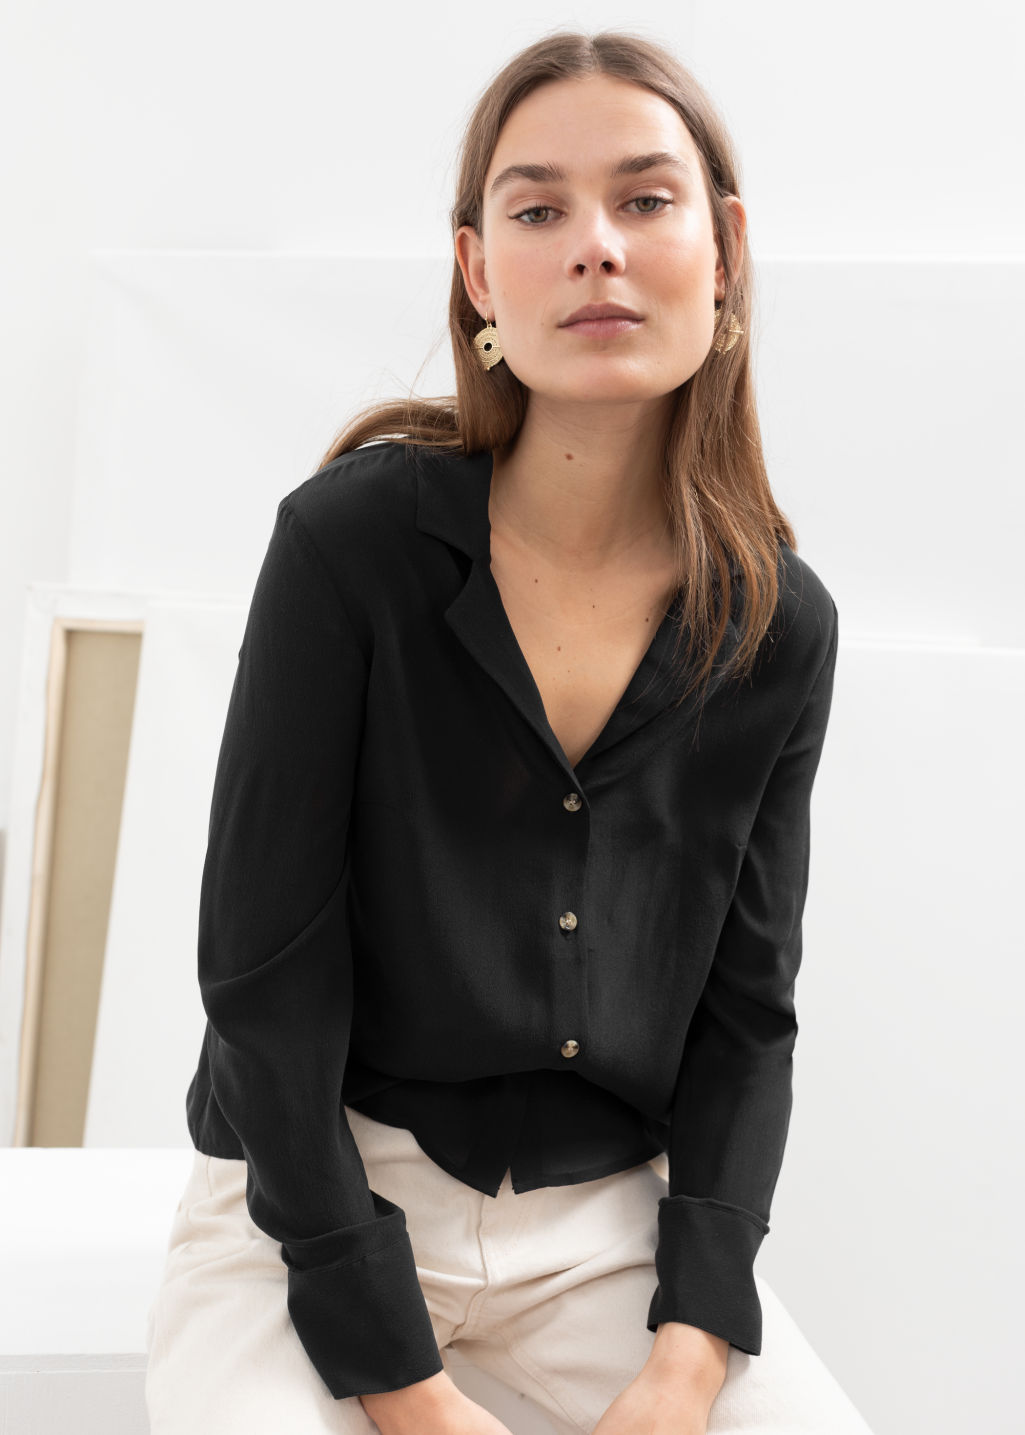 617540b086e V-Cut Silk Button Up Blouse - Black - Shirts - & Other Stories